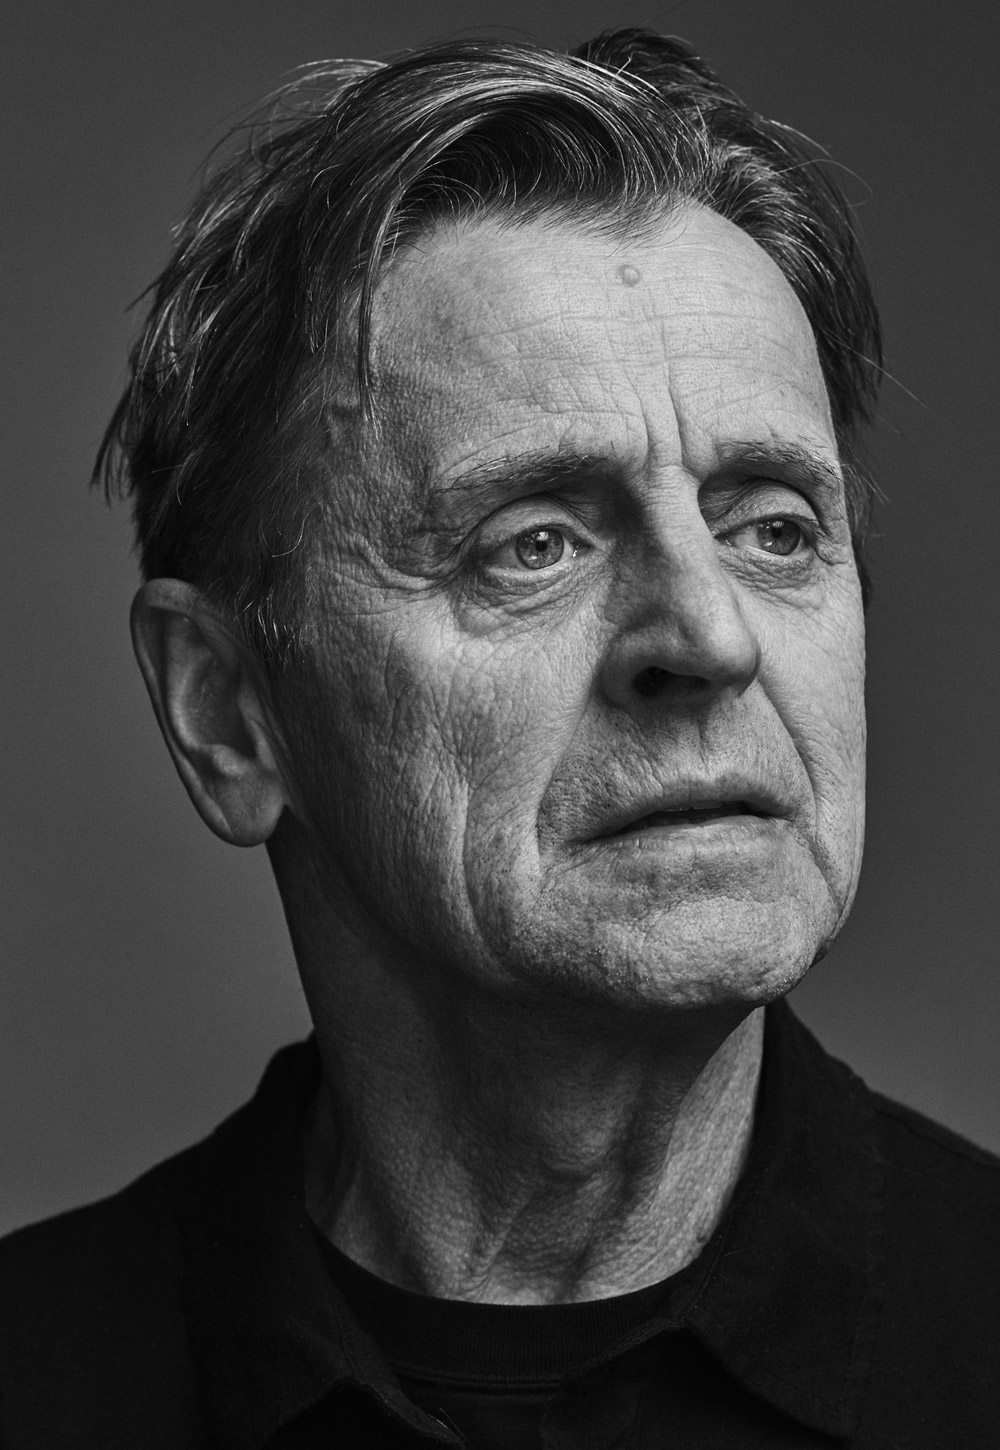 Mikhail Baryshnikov, © Mackenzie Stroh, Brooklyn, NY, United States, First Place Professional : Commercial/Editorial/Assignment, Grand Prize, PDN Faces - Portrait Photography Contest